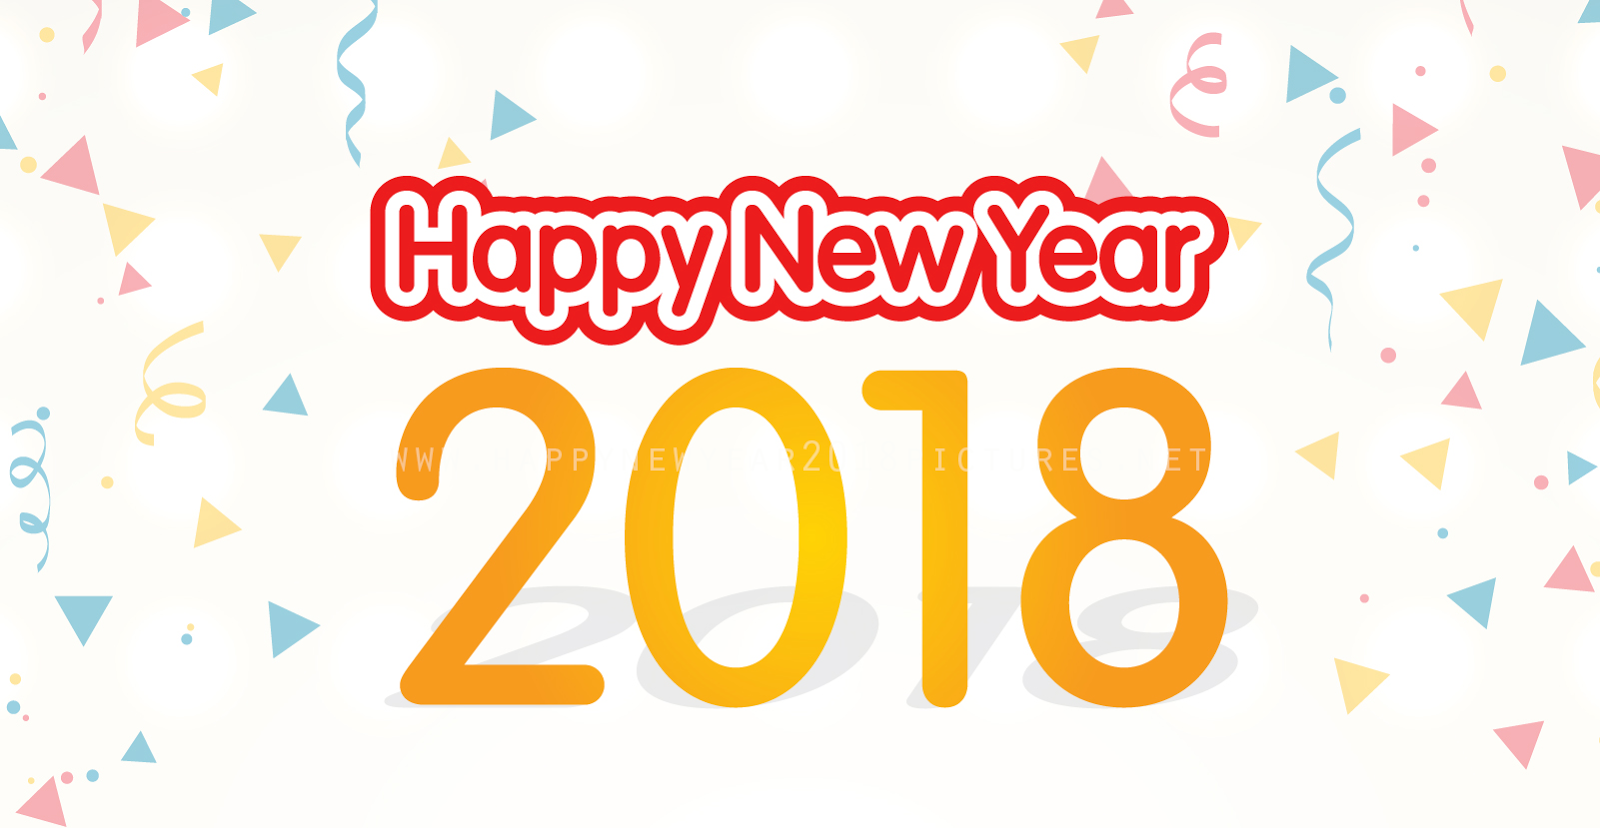 1000 happy new year 2018 hd wallpapers images free download